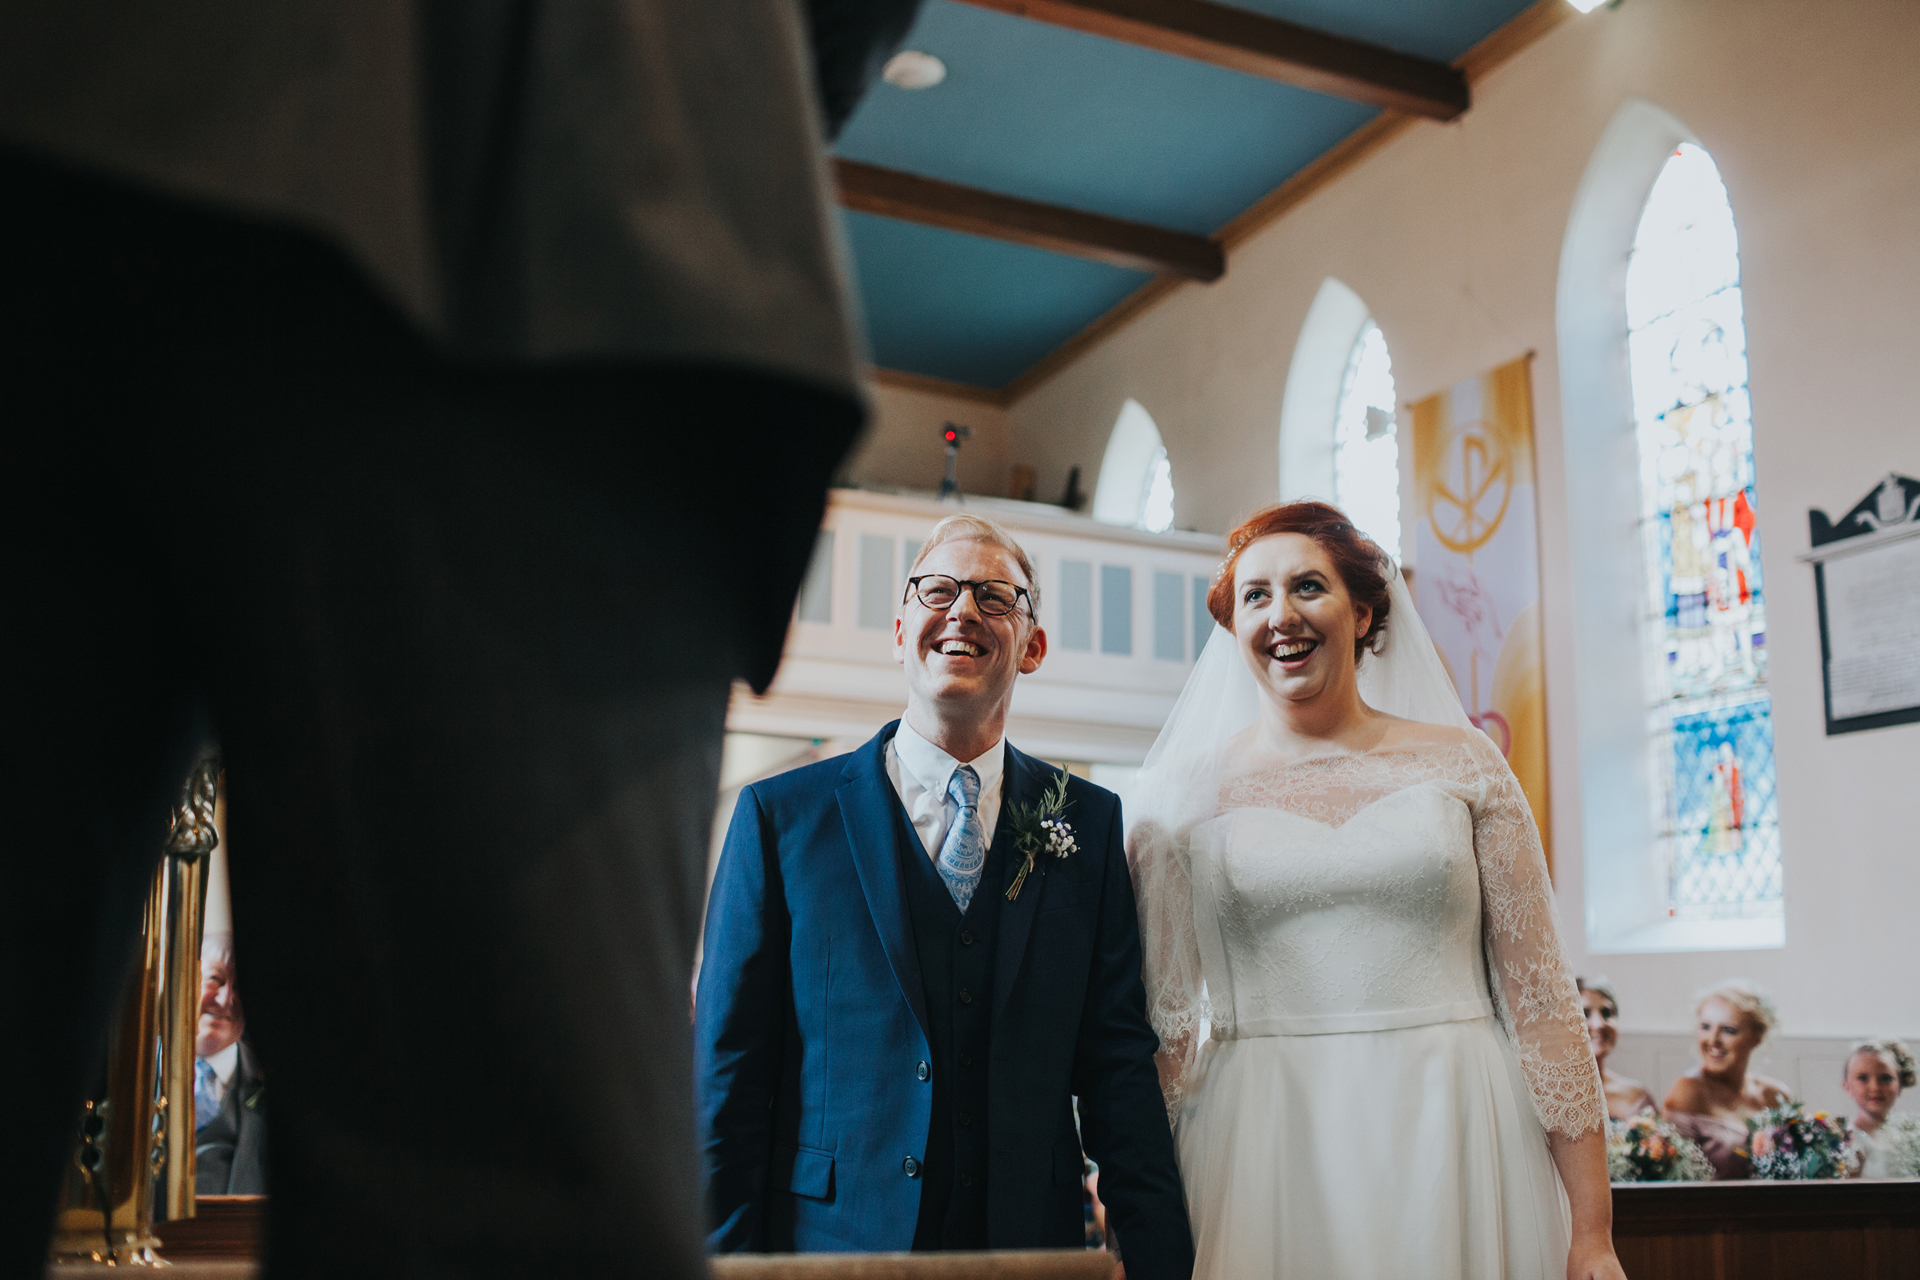 Bride and groom look on smiling as their friend reads.